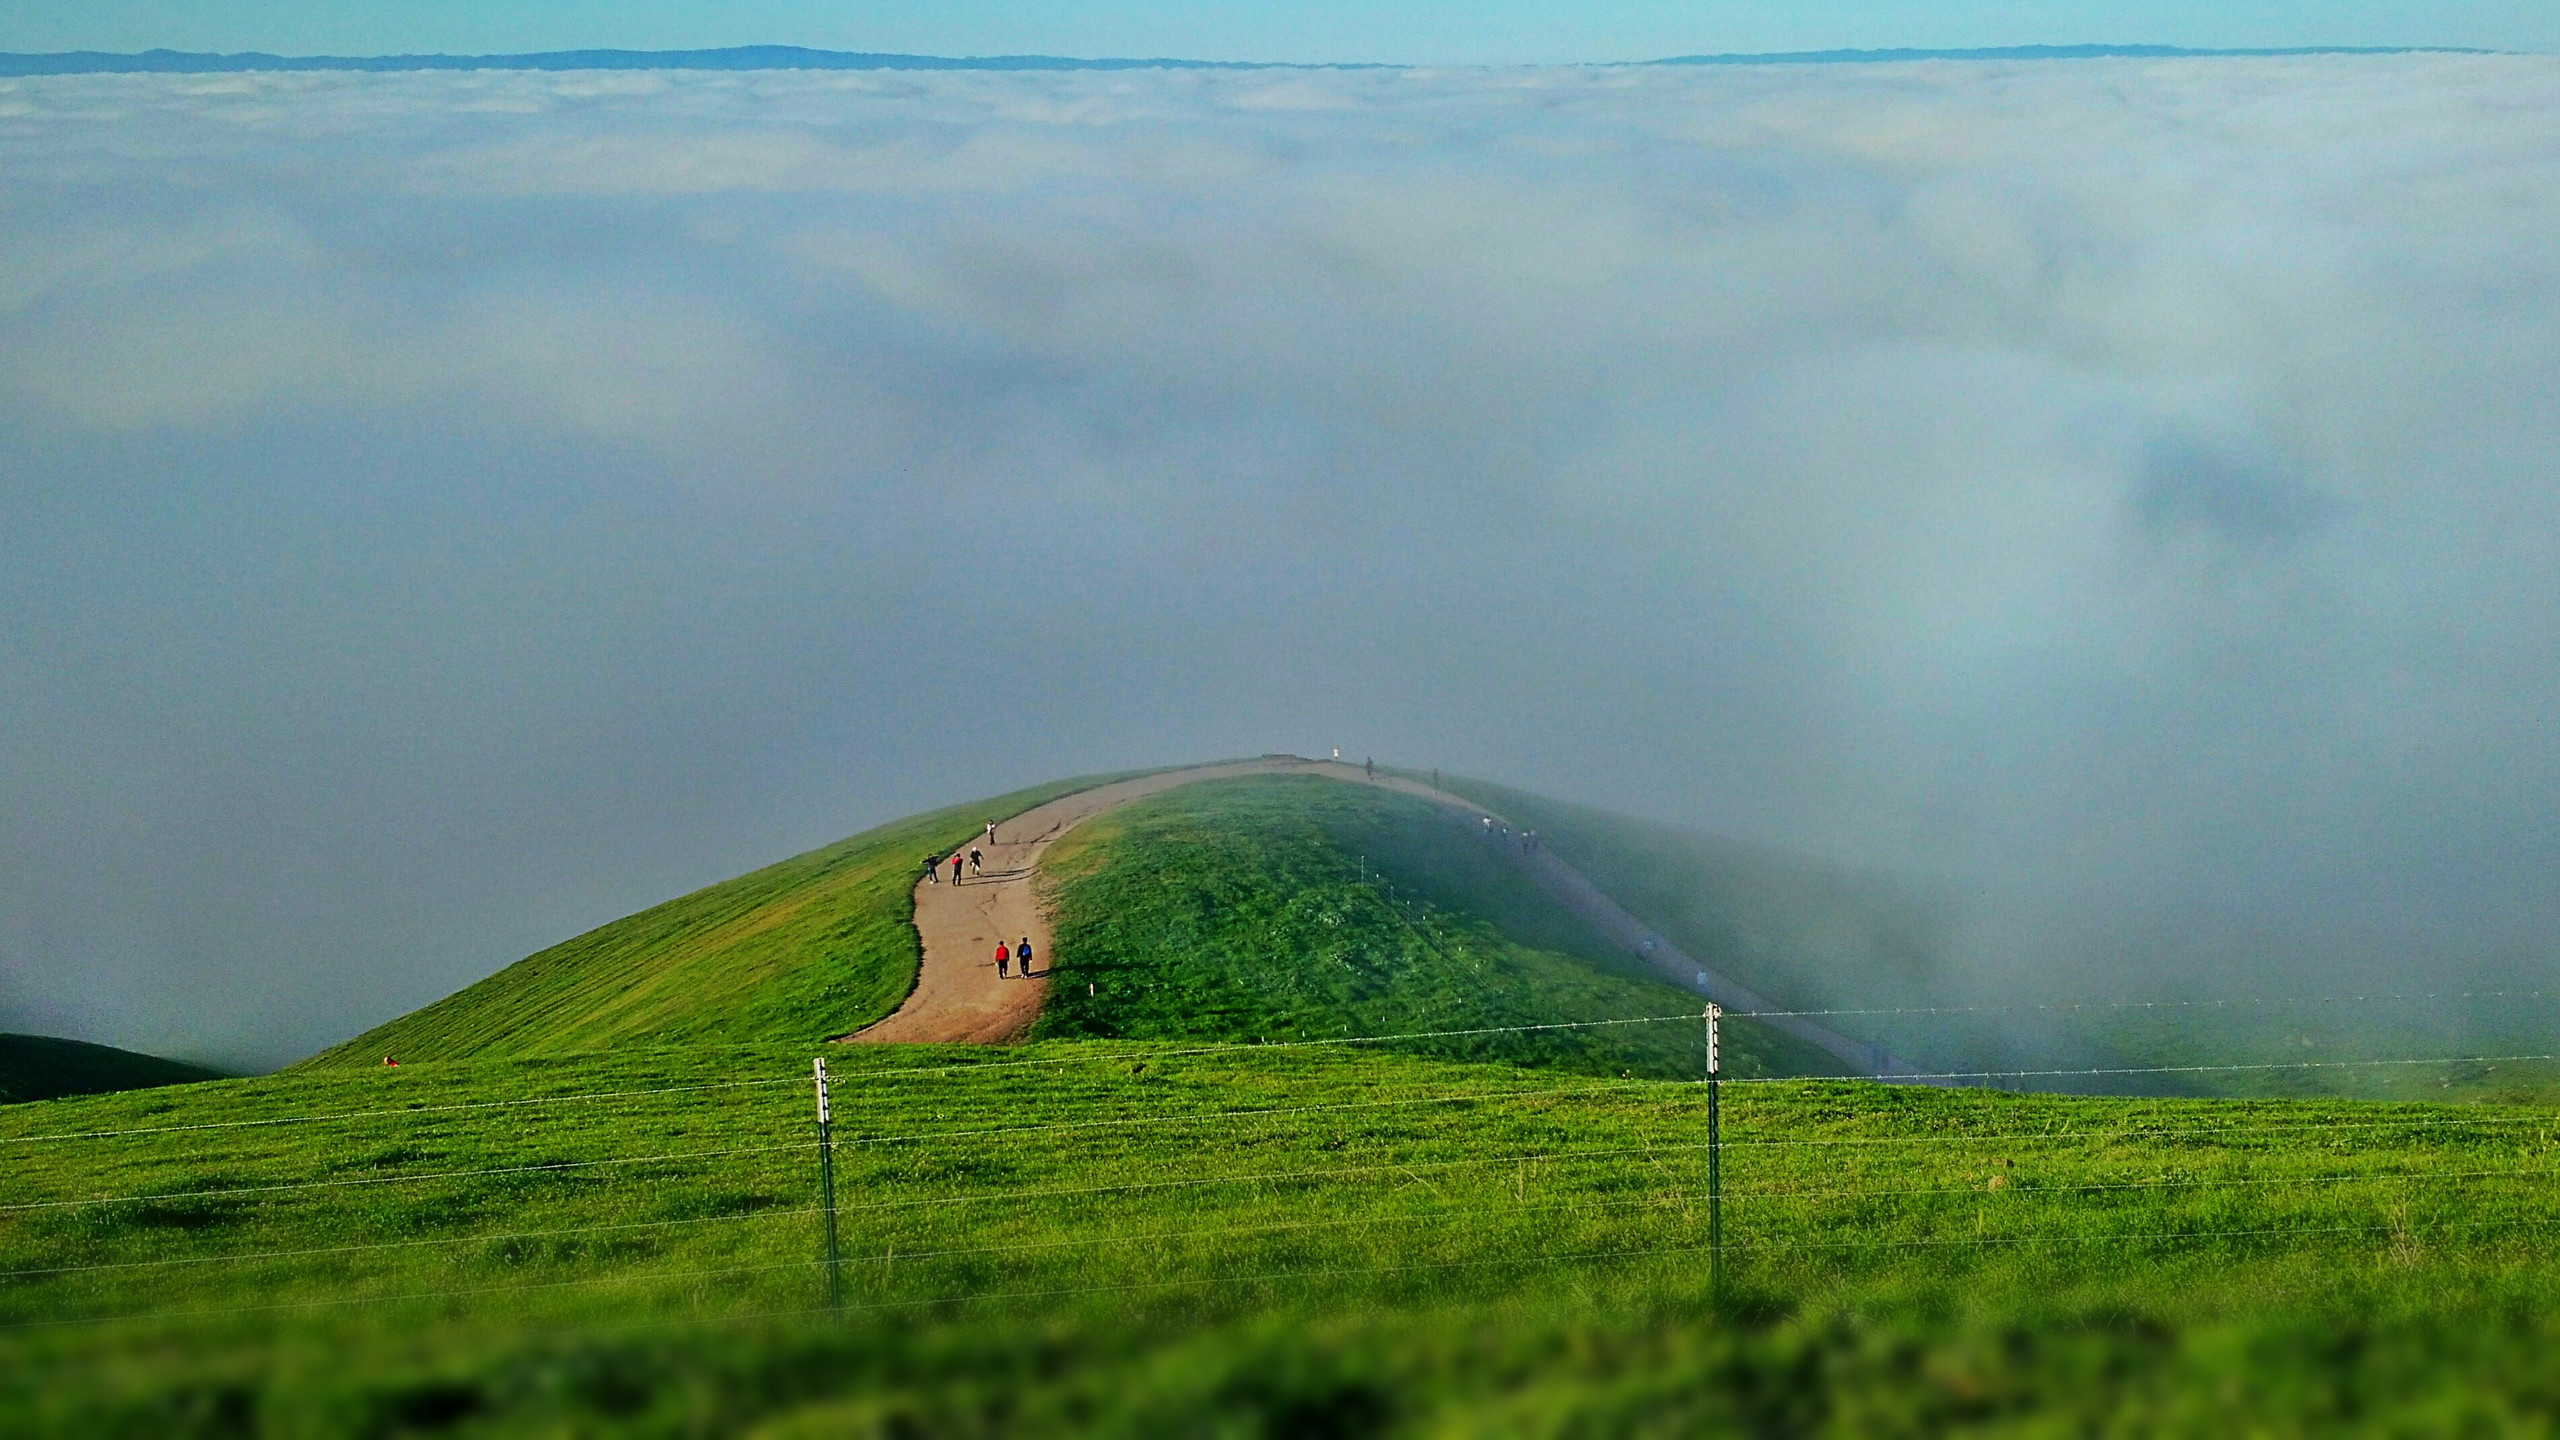 BOTPOST [BOT] Above the clouds at Mission Peak Regional Preserve 2560x1440